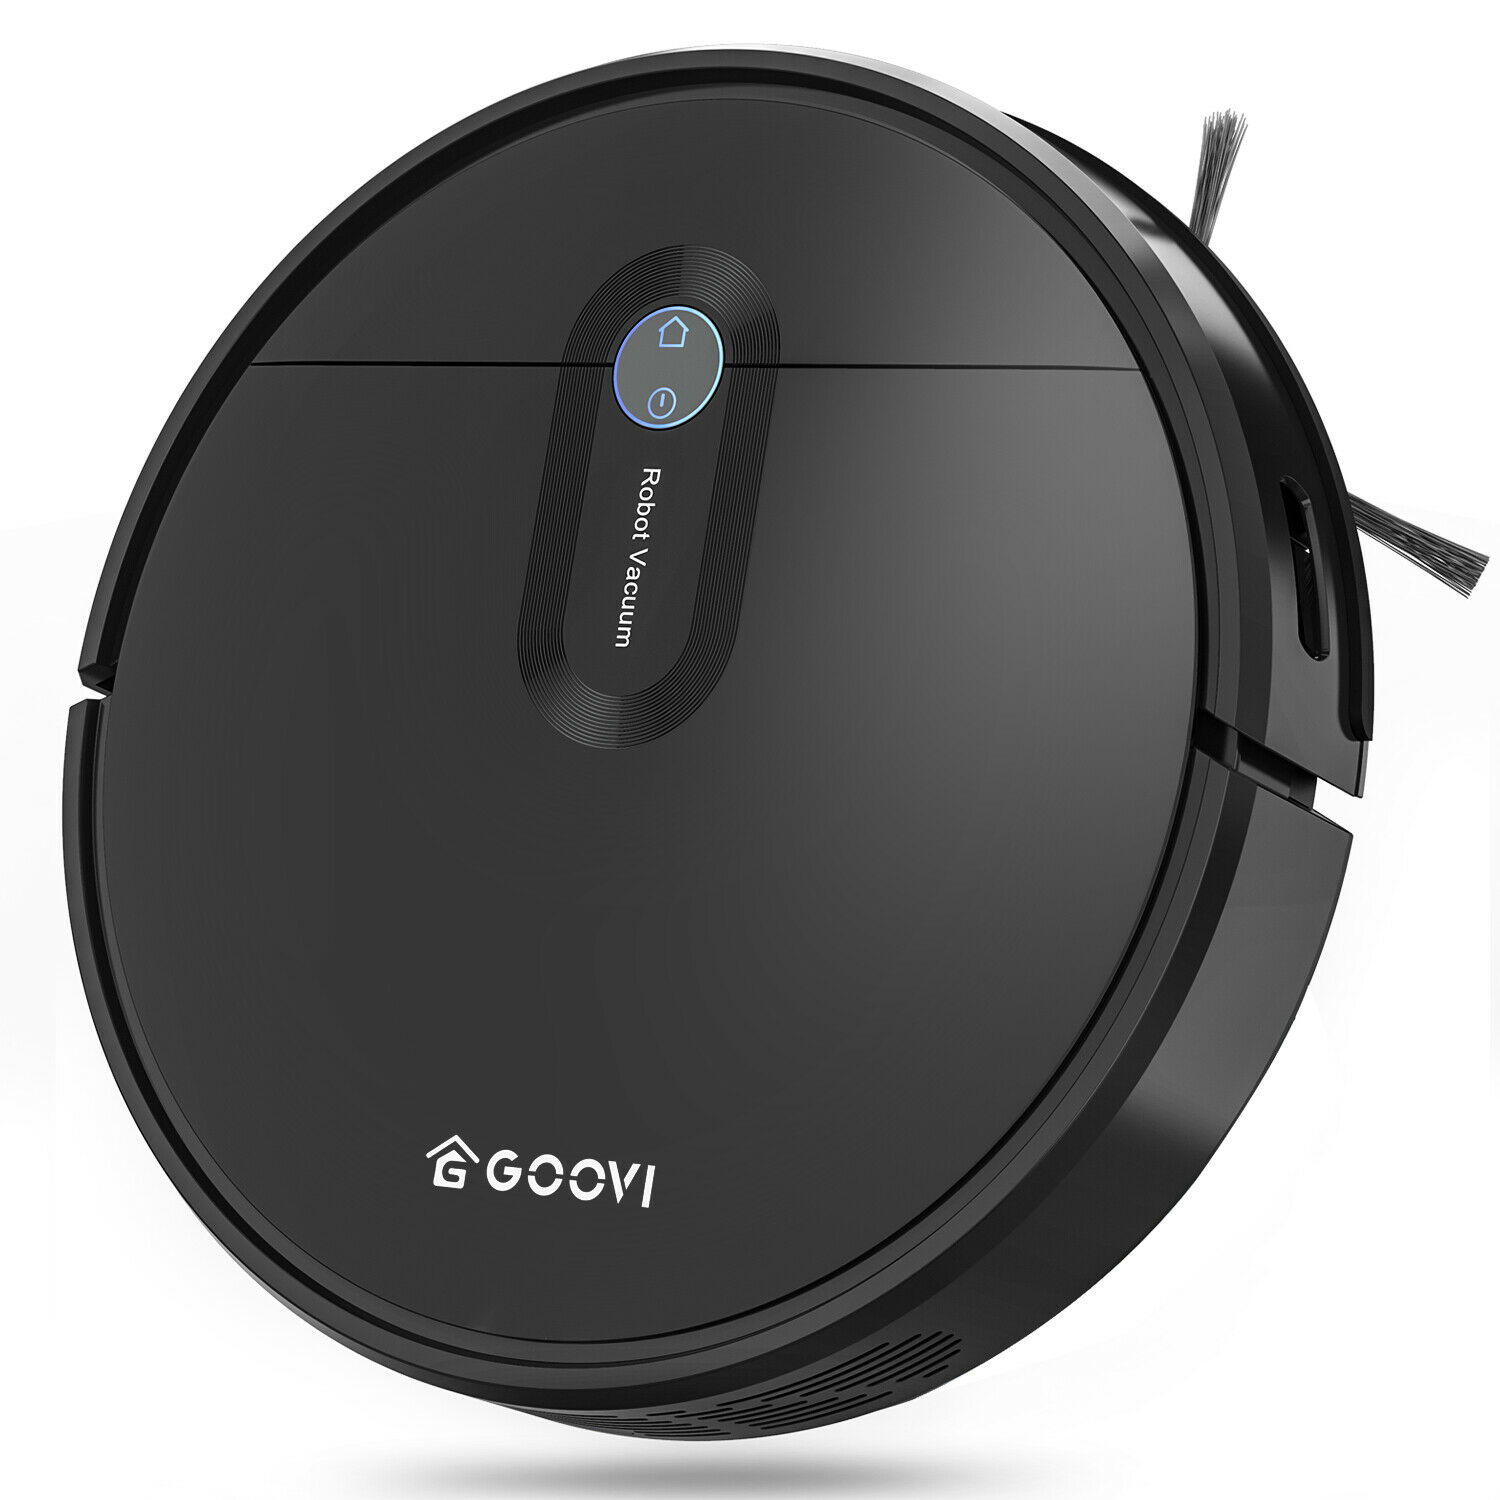 GOOVI Max Smart Robot Vacuum Cleaner 2000Pa HEPA Filter Remote House Cleaning US